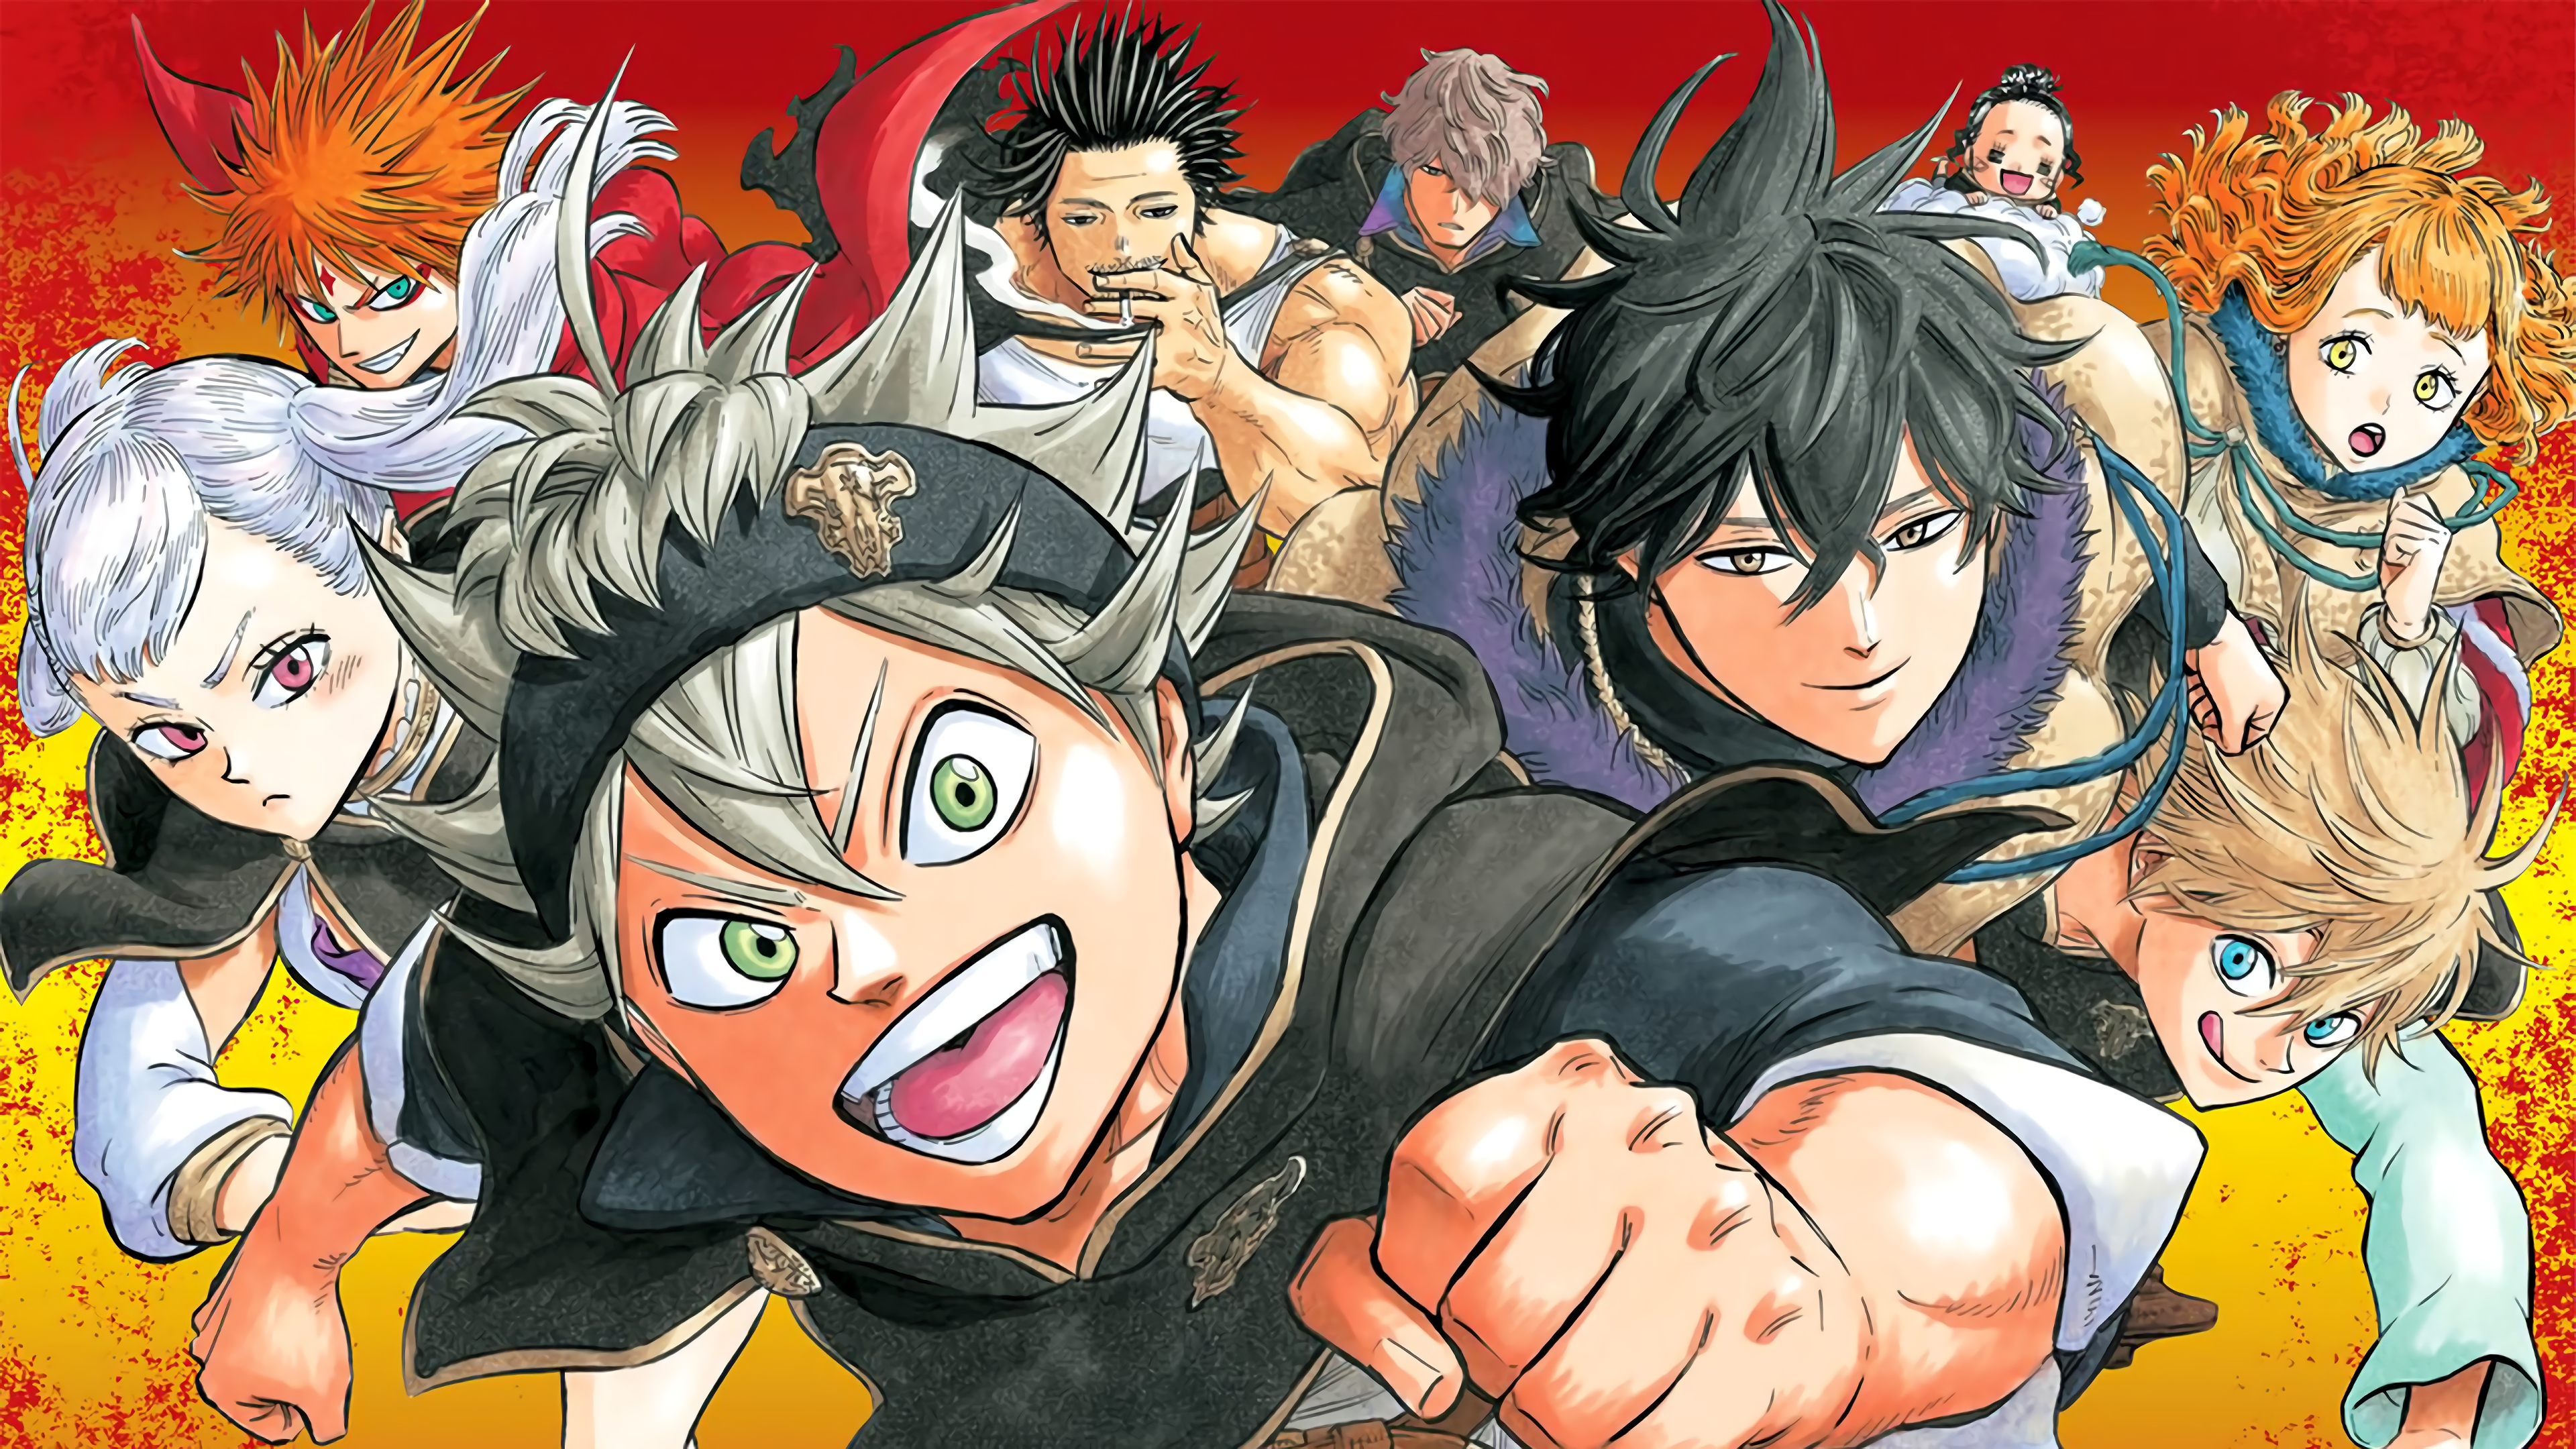 Anime Wallpaper Characters from Black Clover